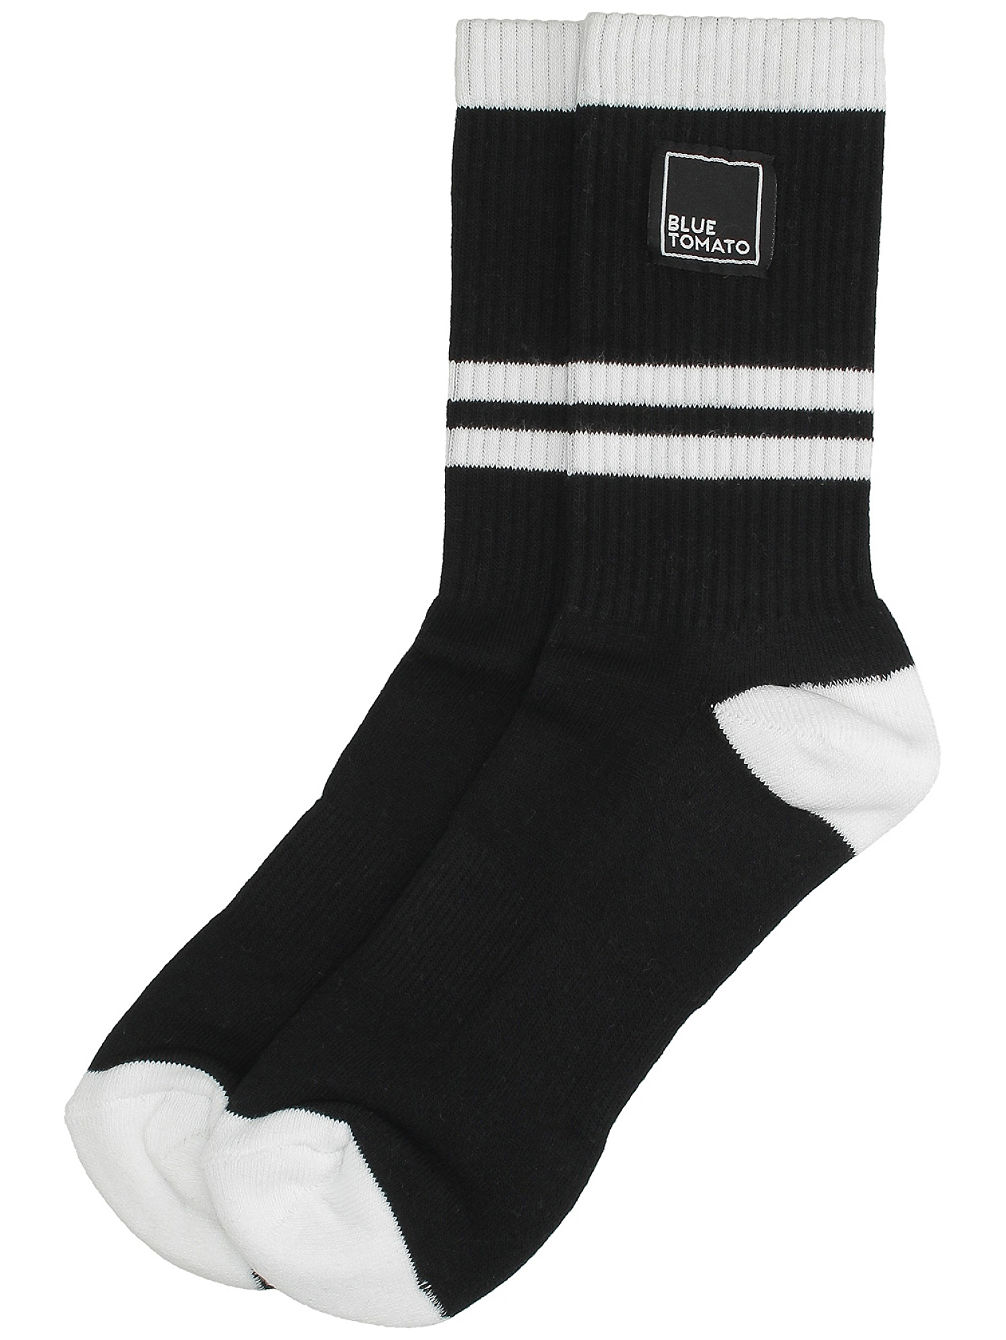 BT Authentic Socken